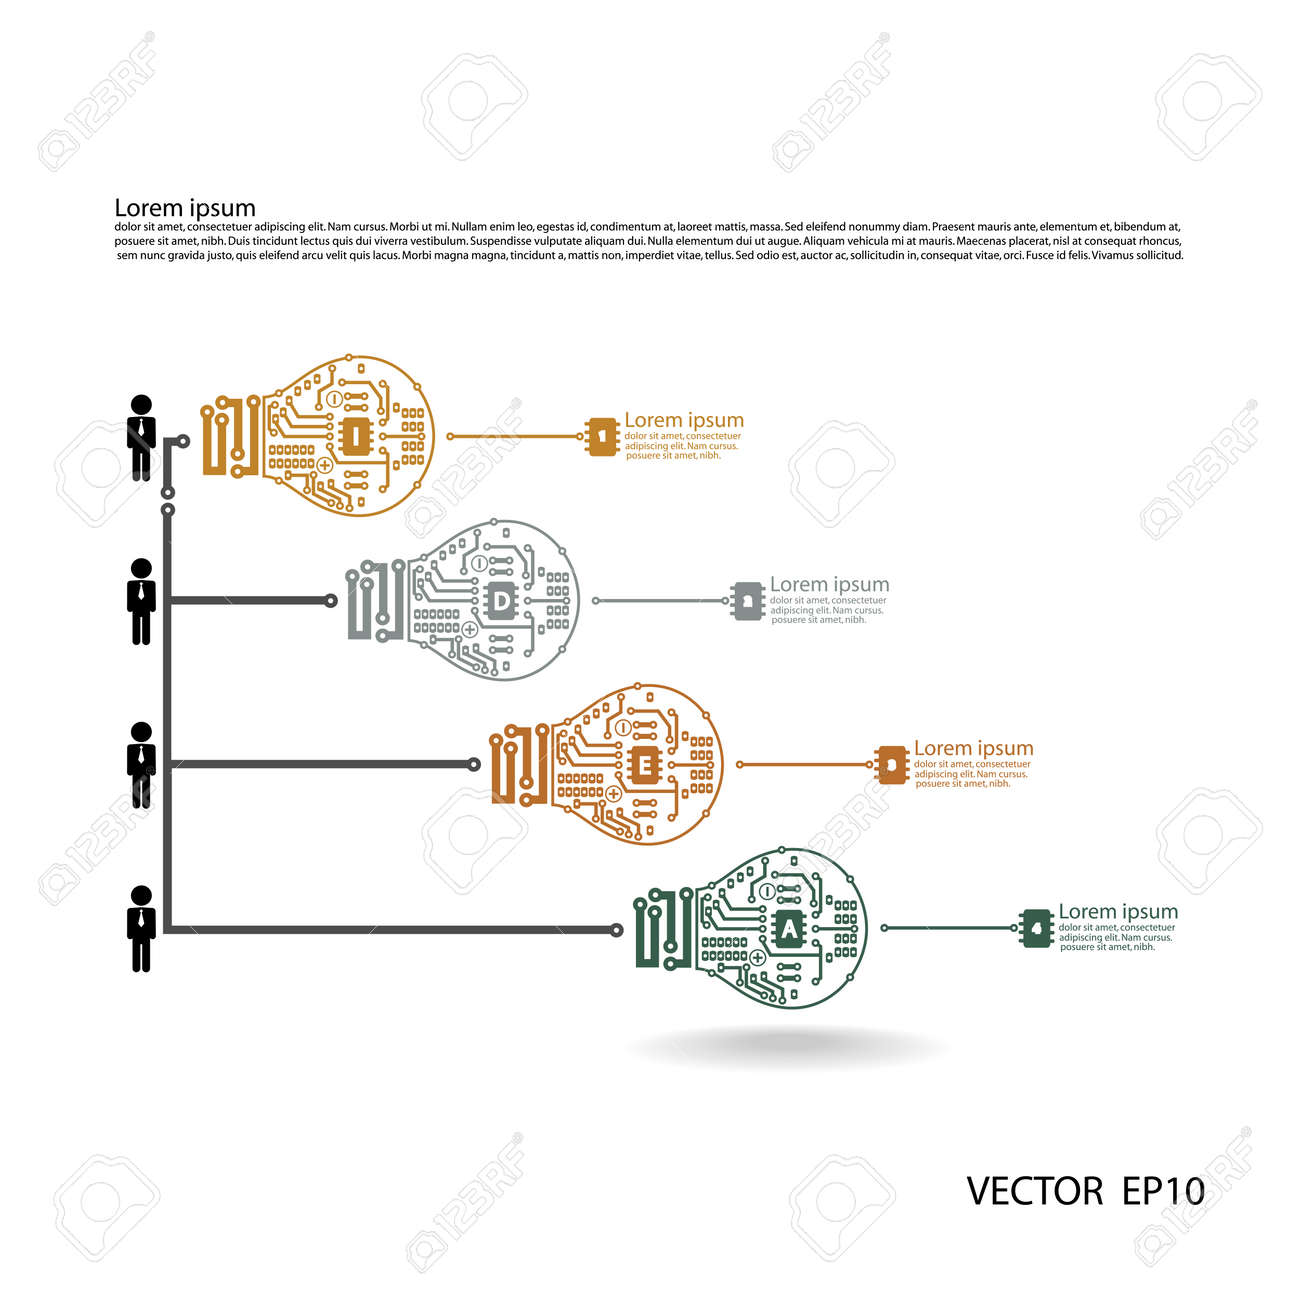 23263136 Light bulb idea concept template Light bulb circuit symbol Vector illustration can be used for work Stock Vector 1987 winnebago 22e wiper cruse signal wiring diagram 88029,e  at nearapp.co